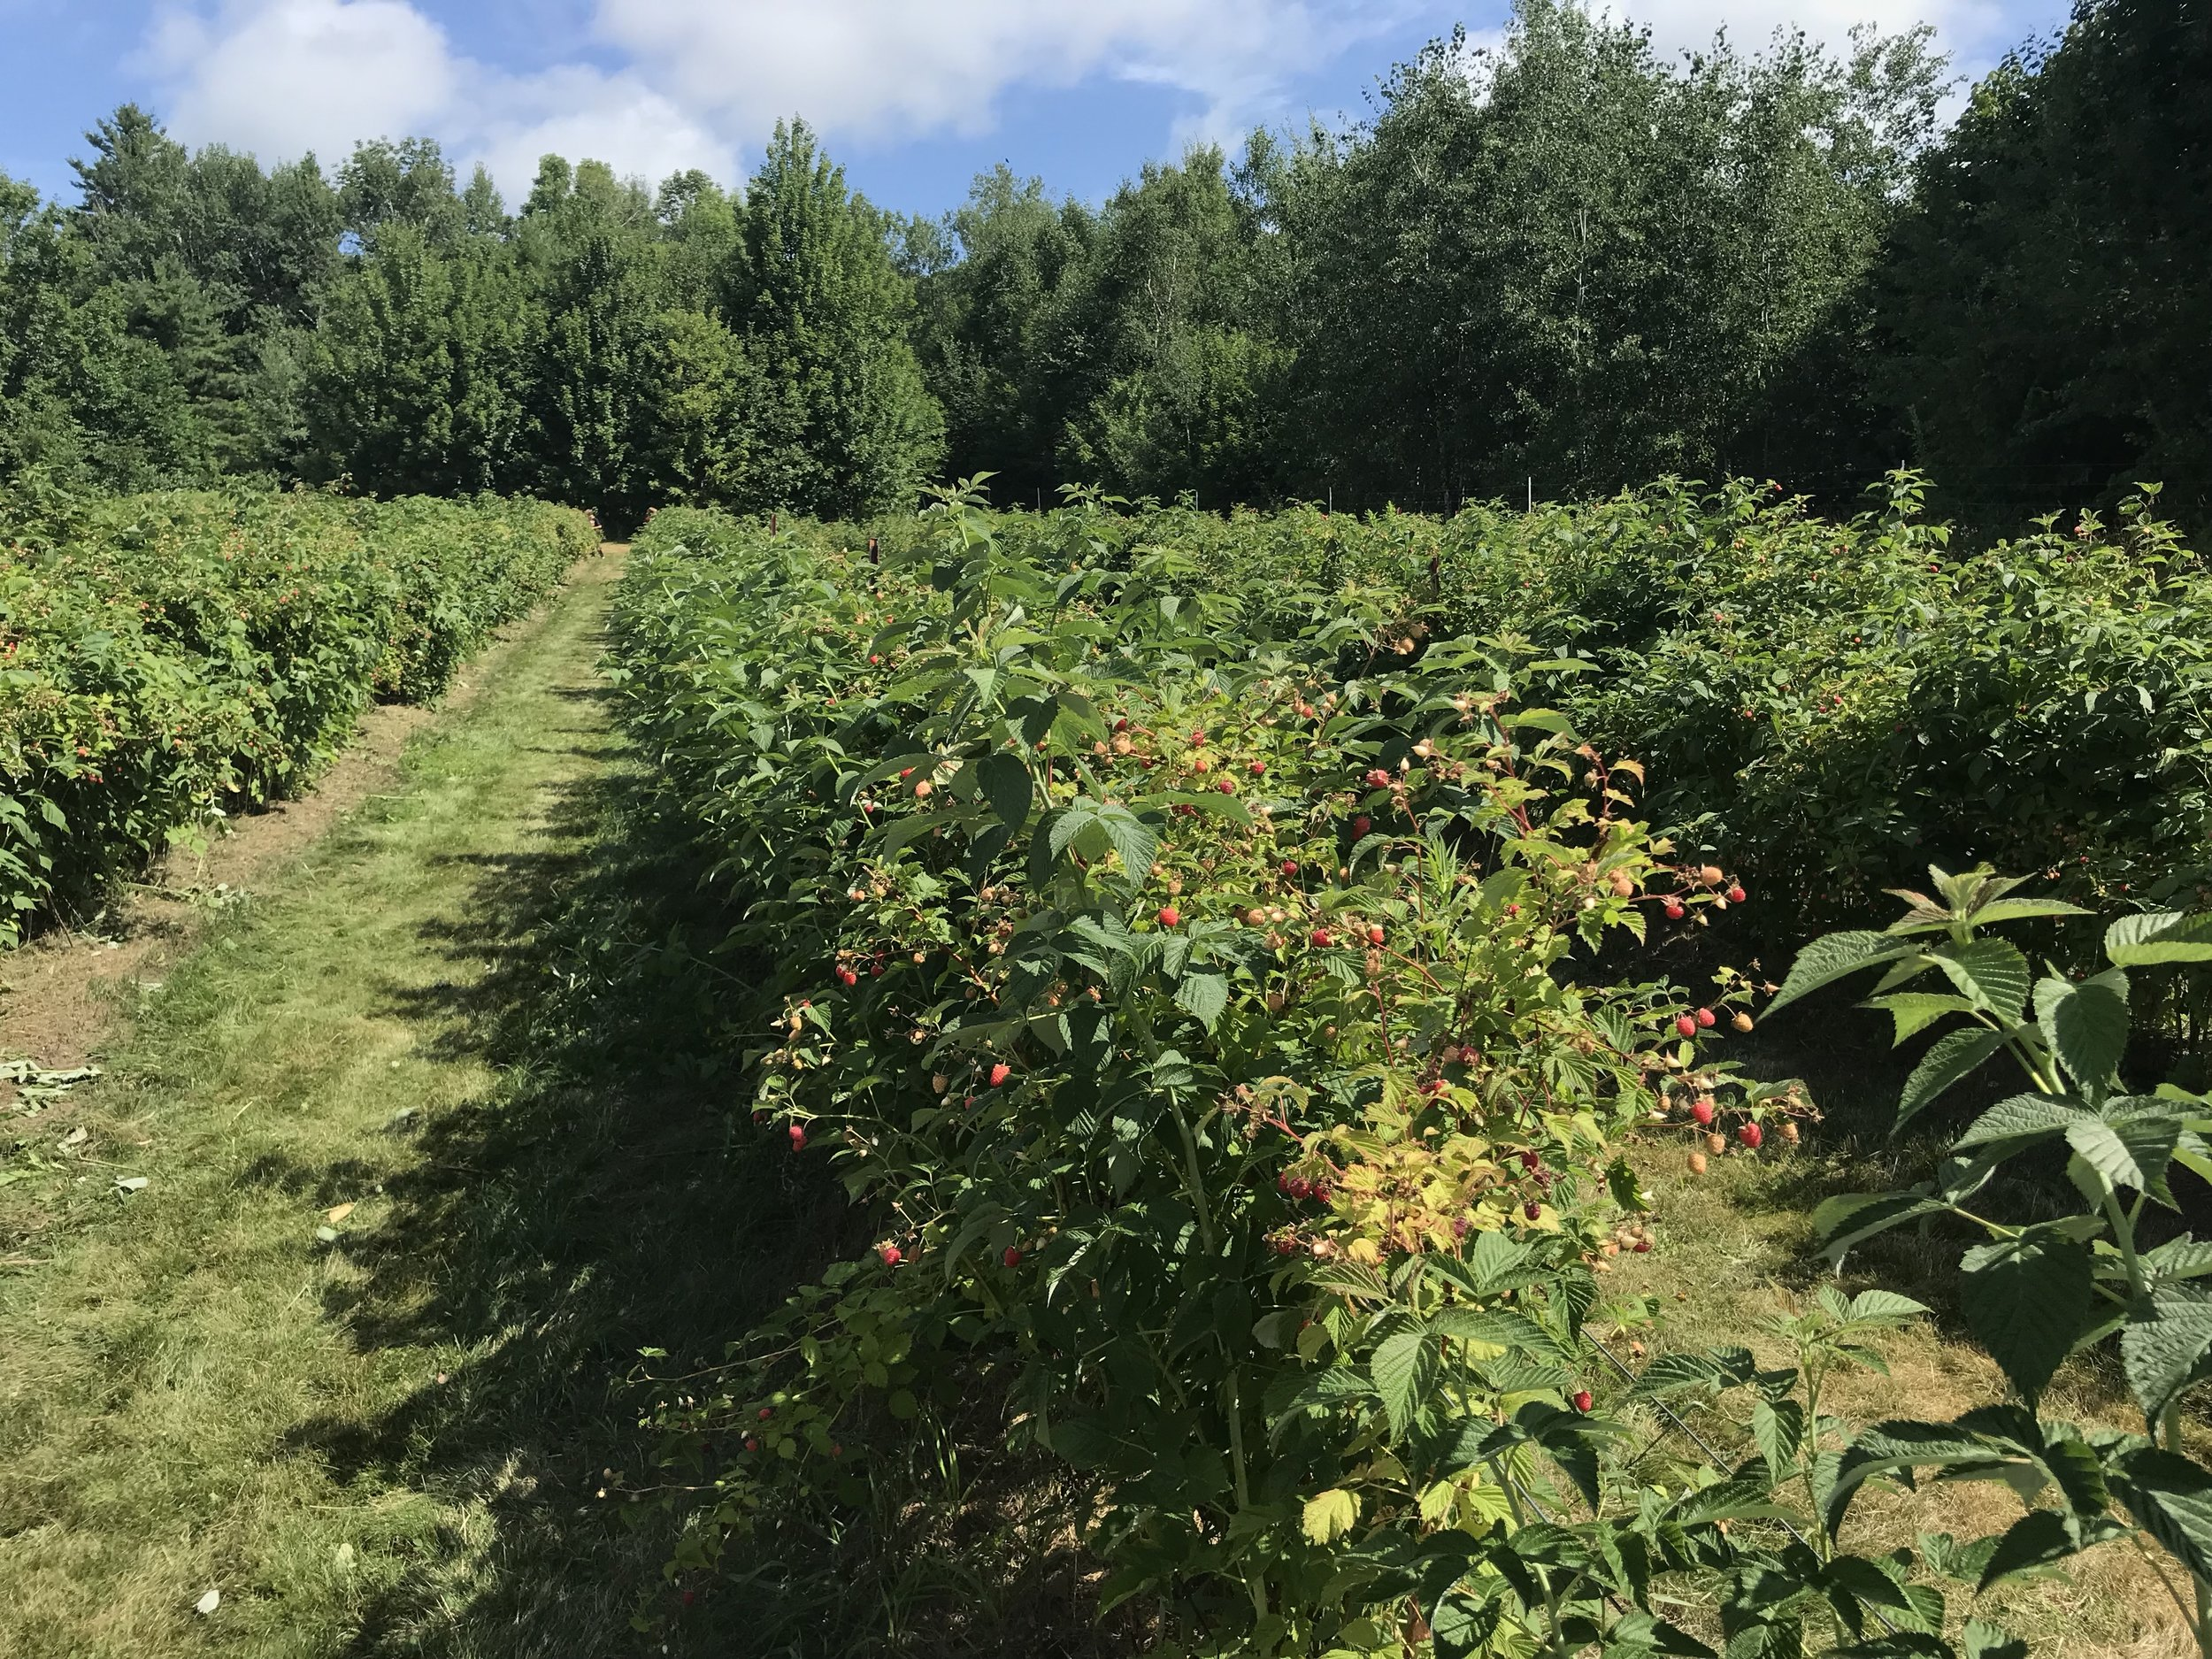 The raspberries spread out across a couple large fields.